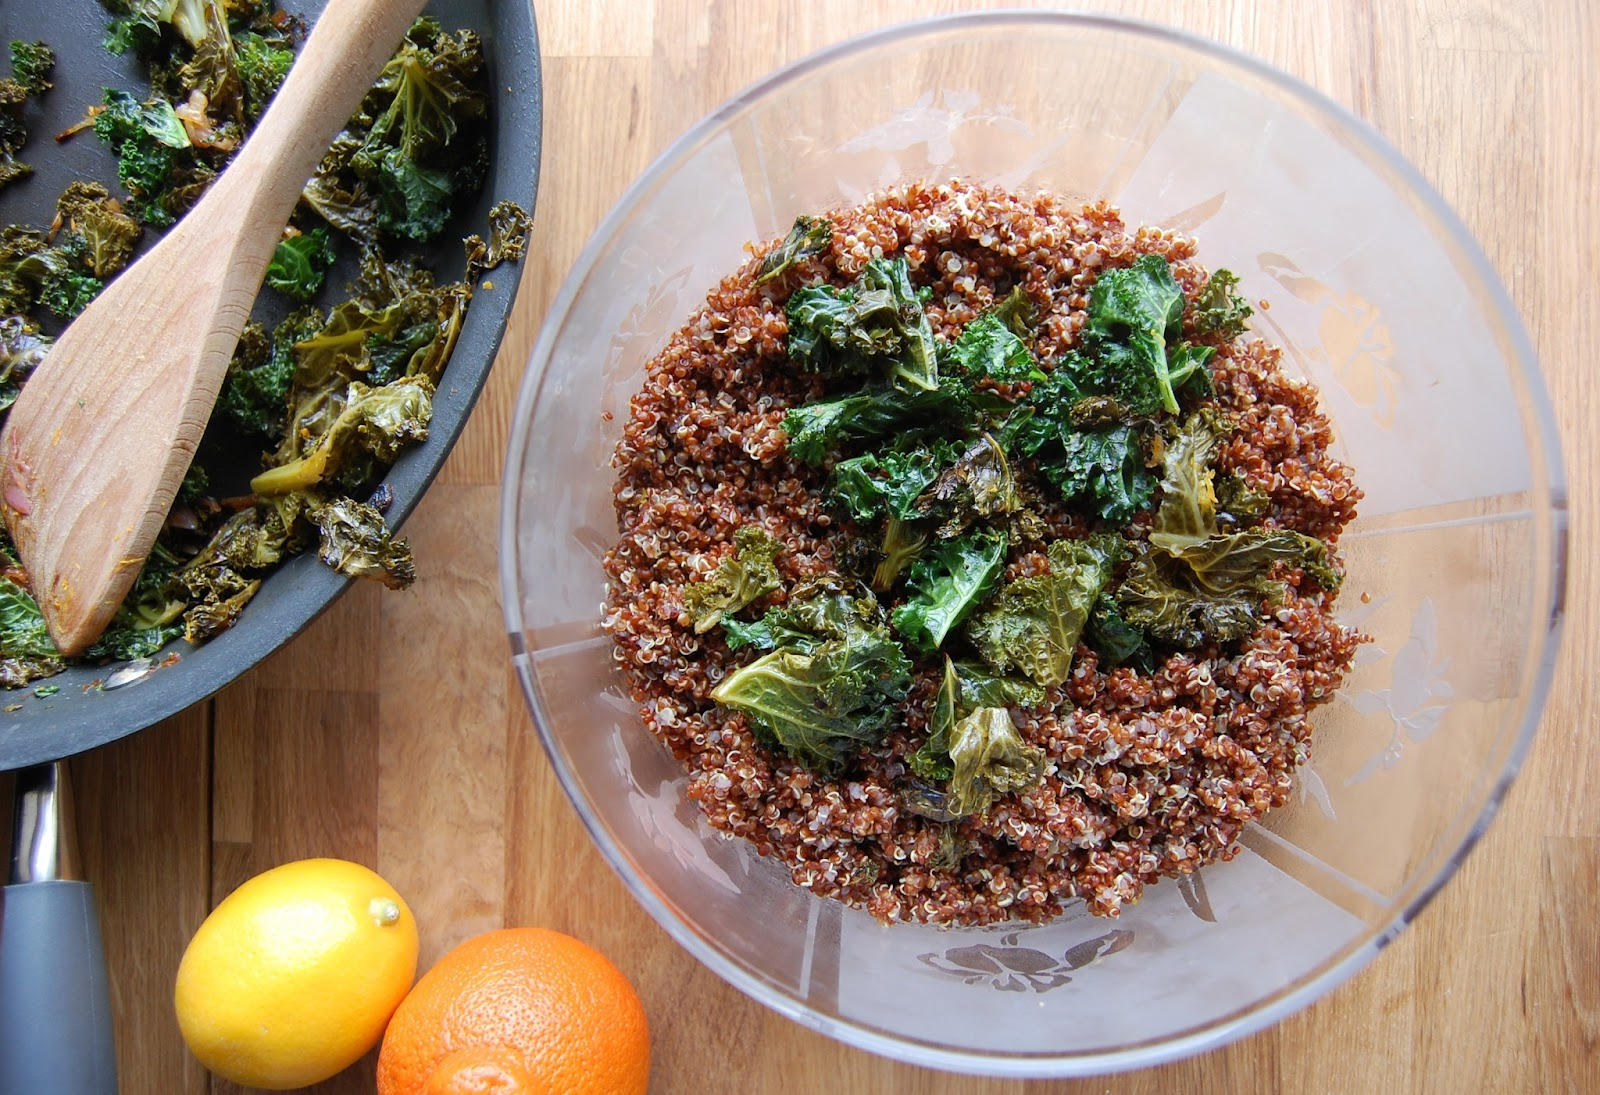 Citrus, Quinoa and Kale Salad with Meyer Lemon Vinaigrette